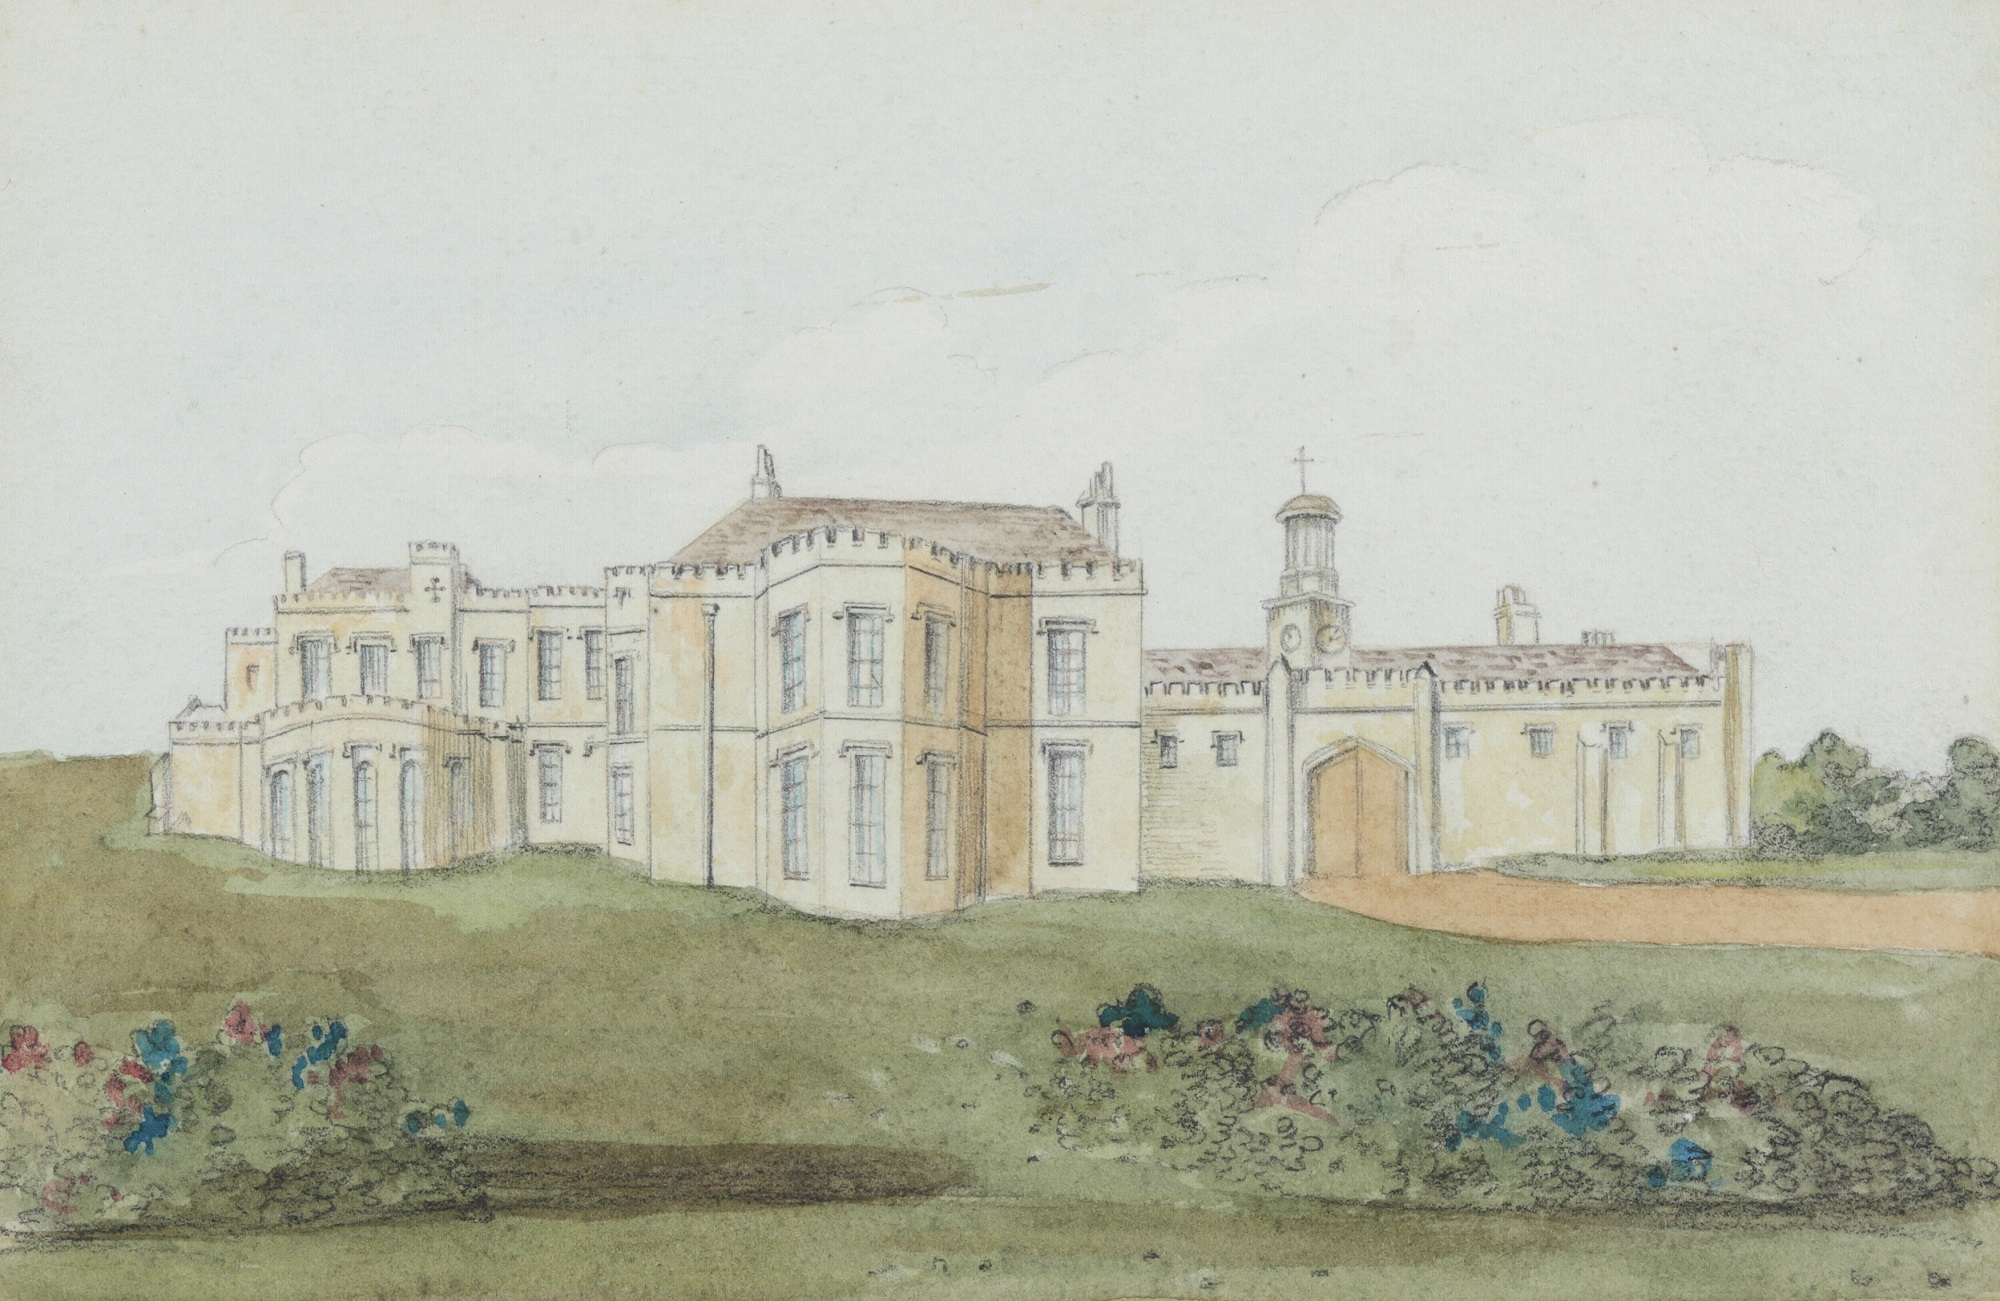 Watercolour of Oatlands House with lawn in front, during the occupation by the Duke of York. The original is in the British Museum.